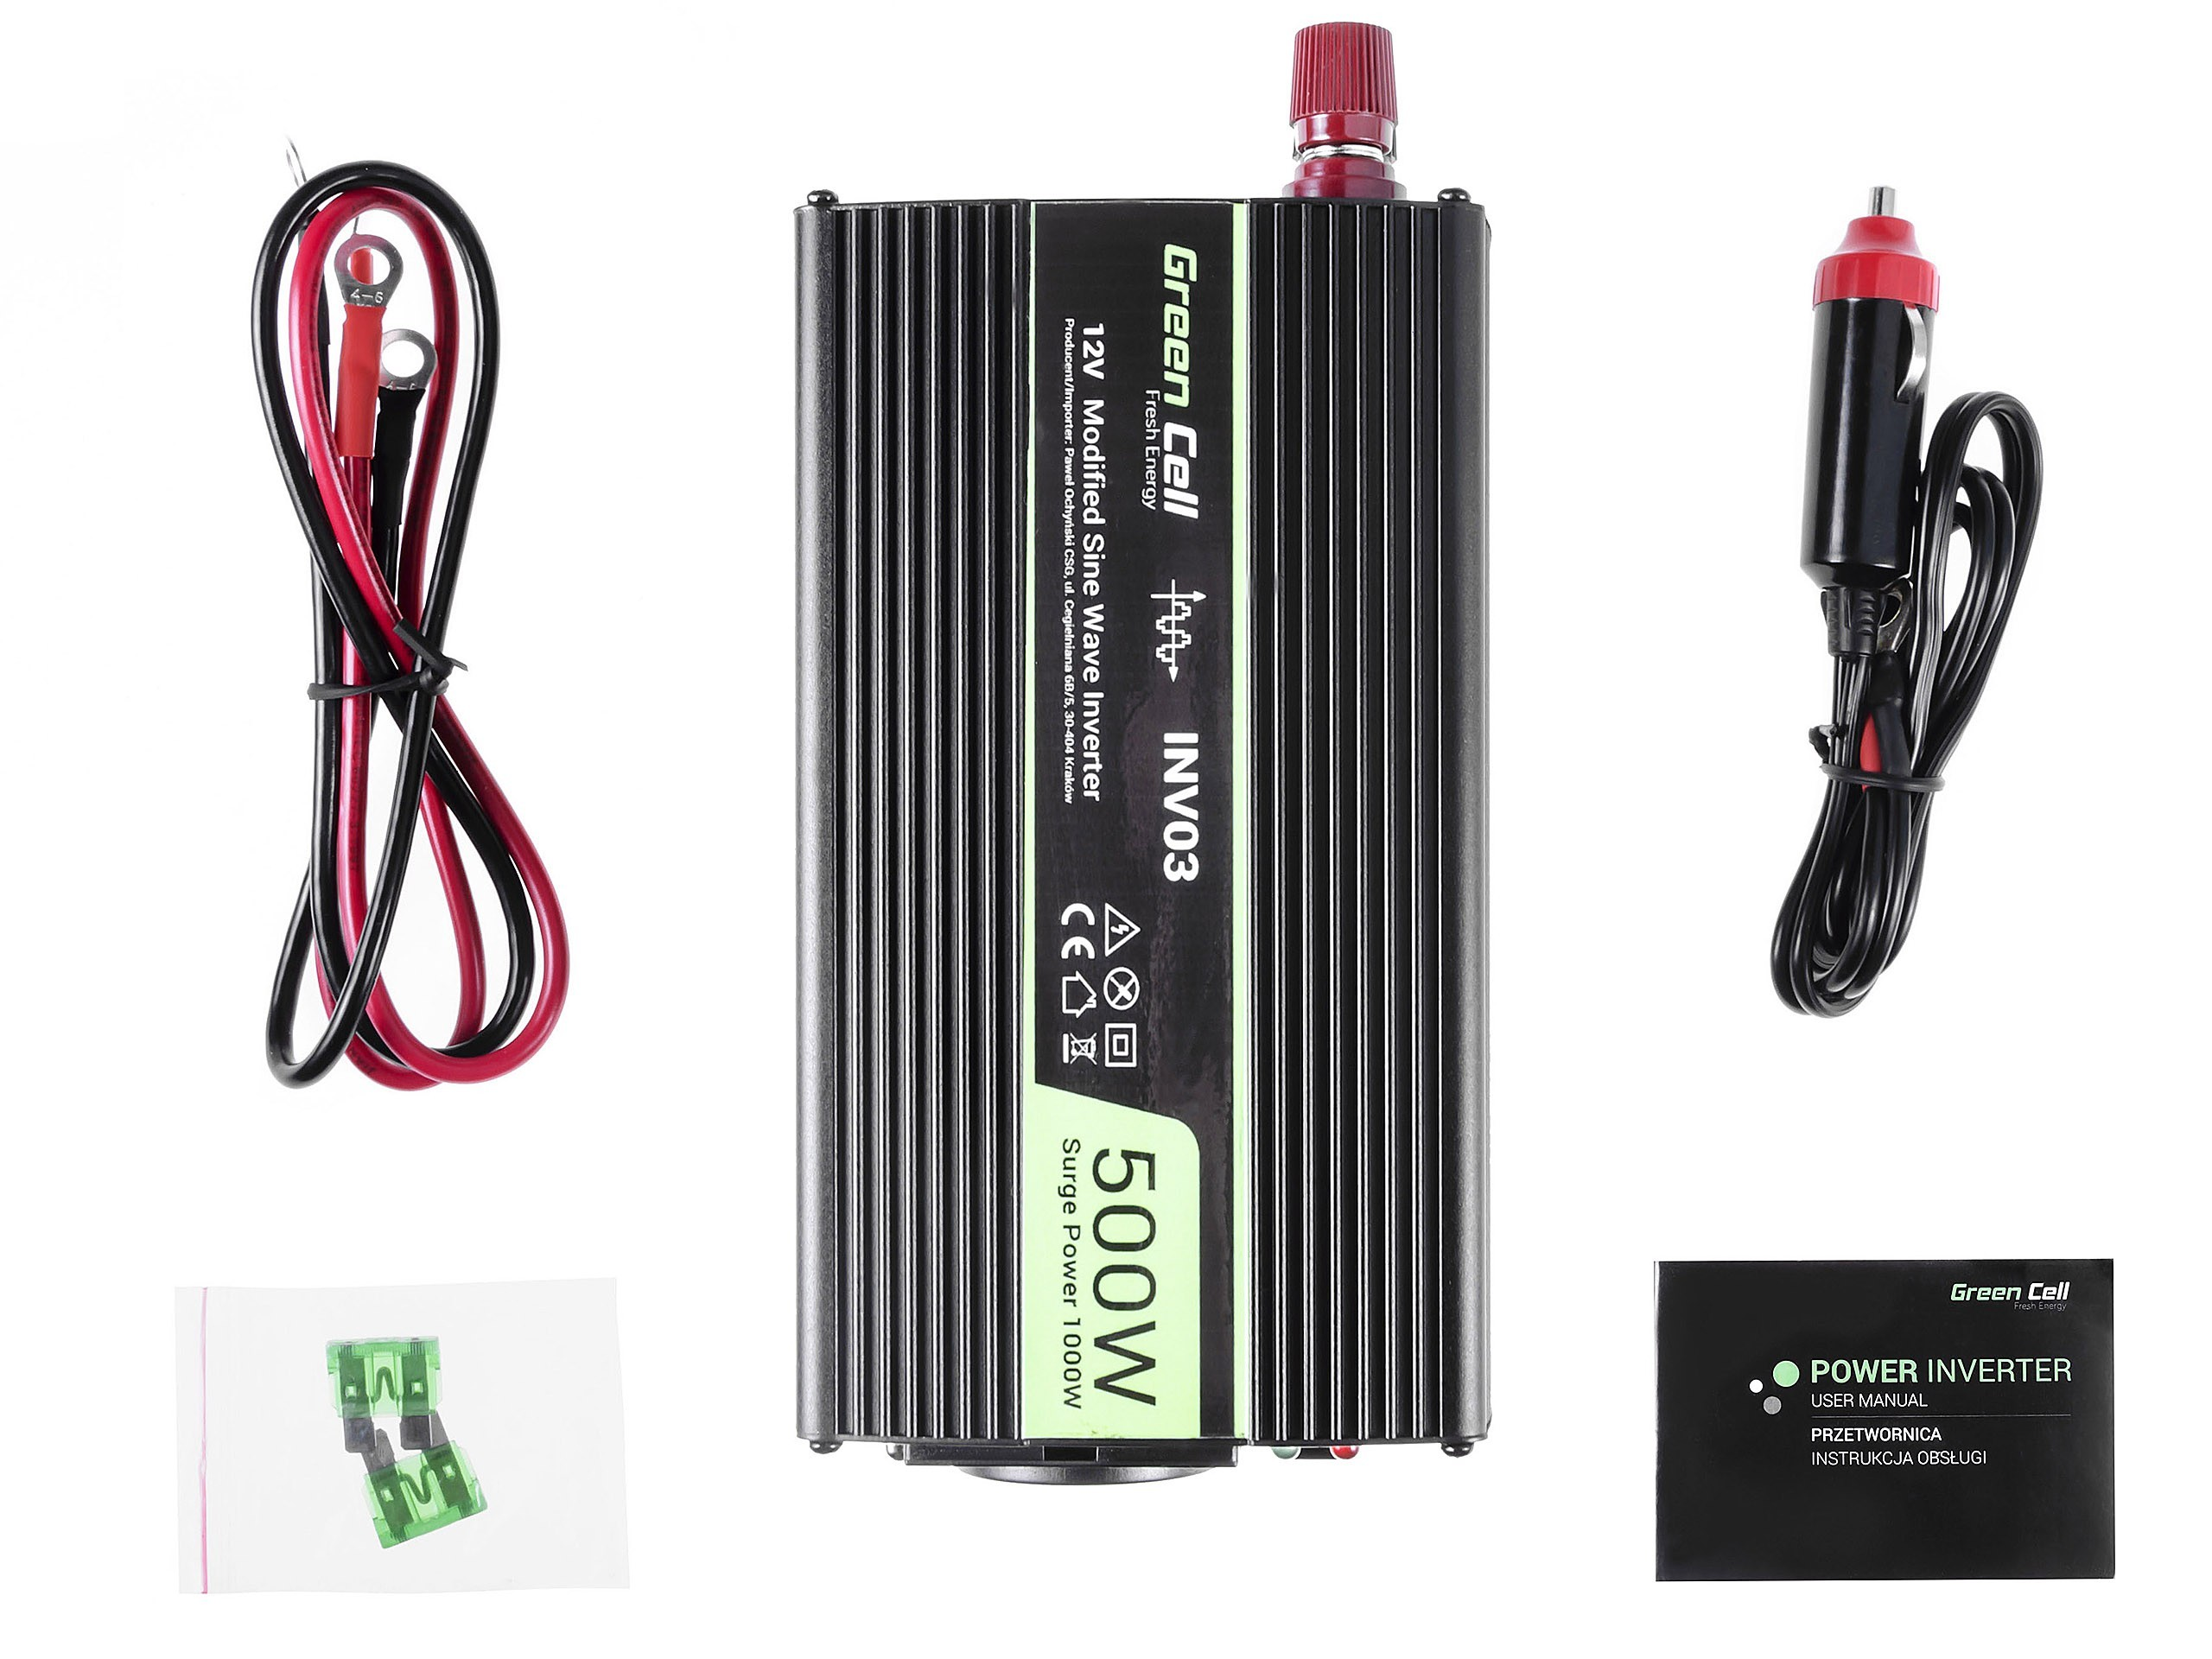 Green Cell Car Power Inverter 12V to 230V, 500W/1000W Strāvas pārveidotājs, Power Inverter